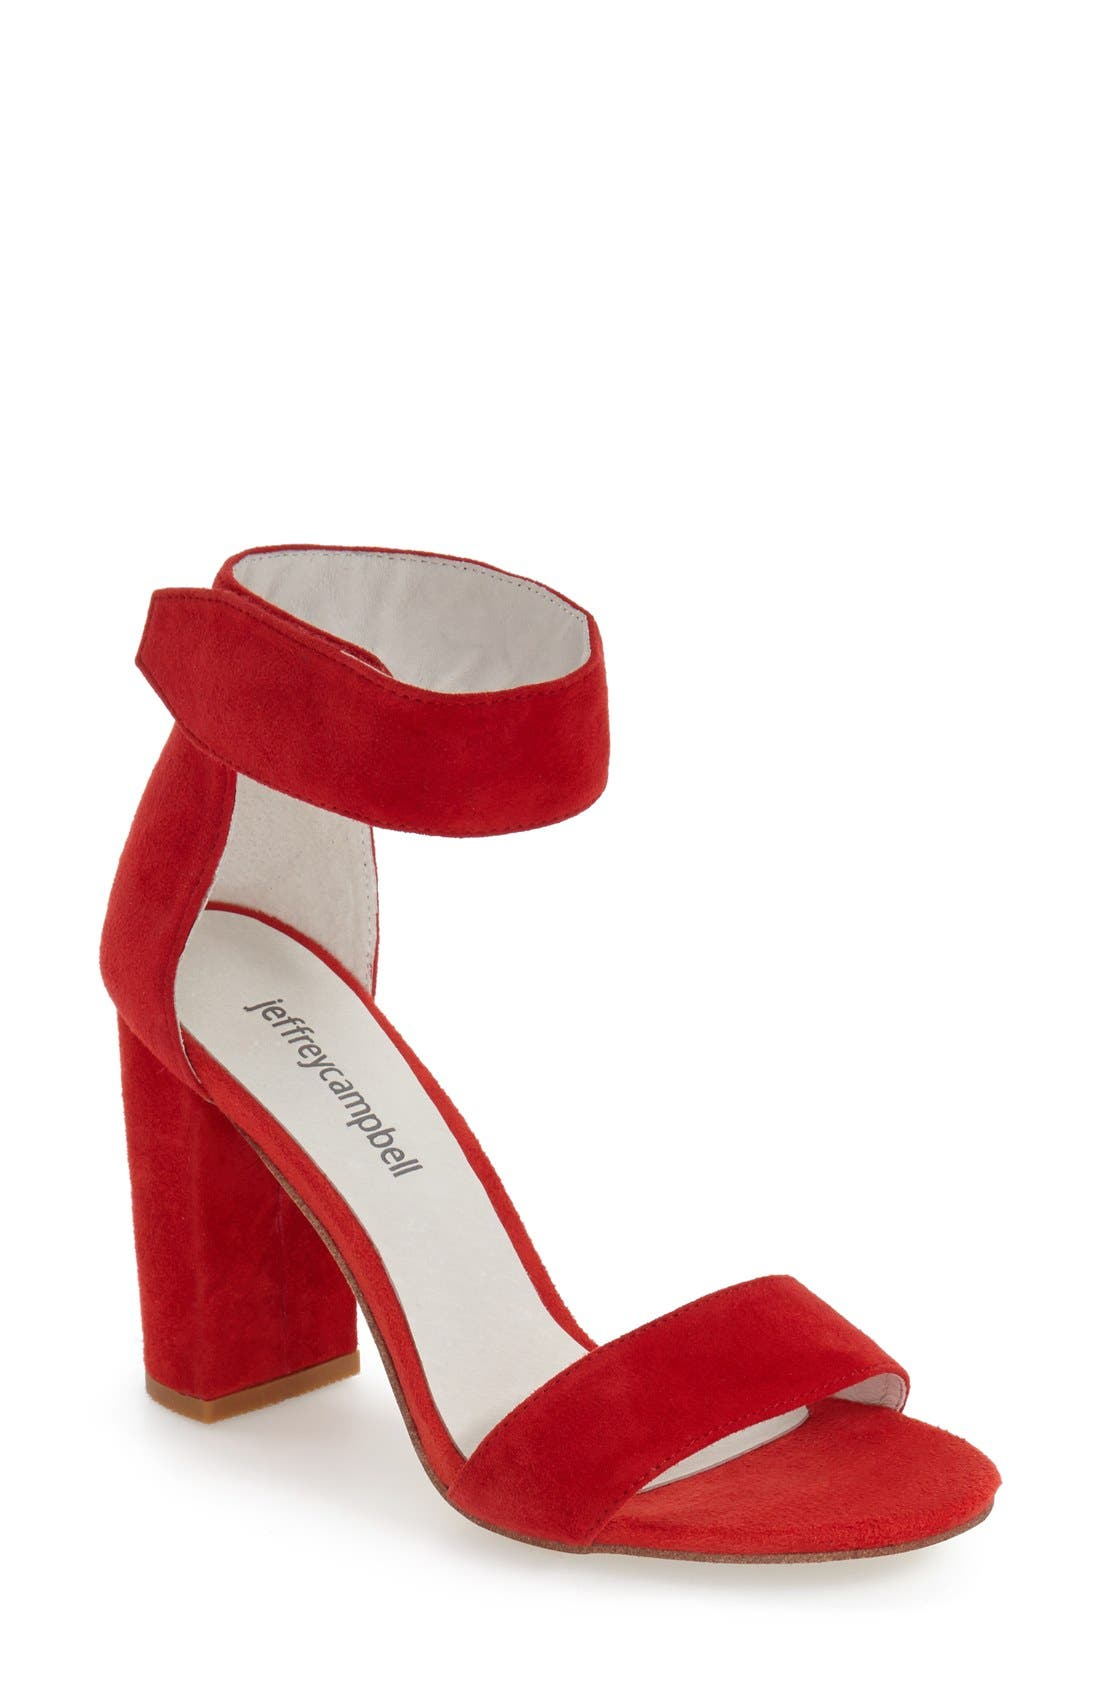 'Lindsay' Ankle Strap Sandal,                             Main thumbnail 1, color,                             Red Suede